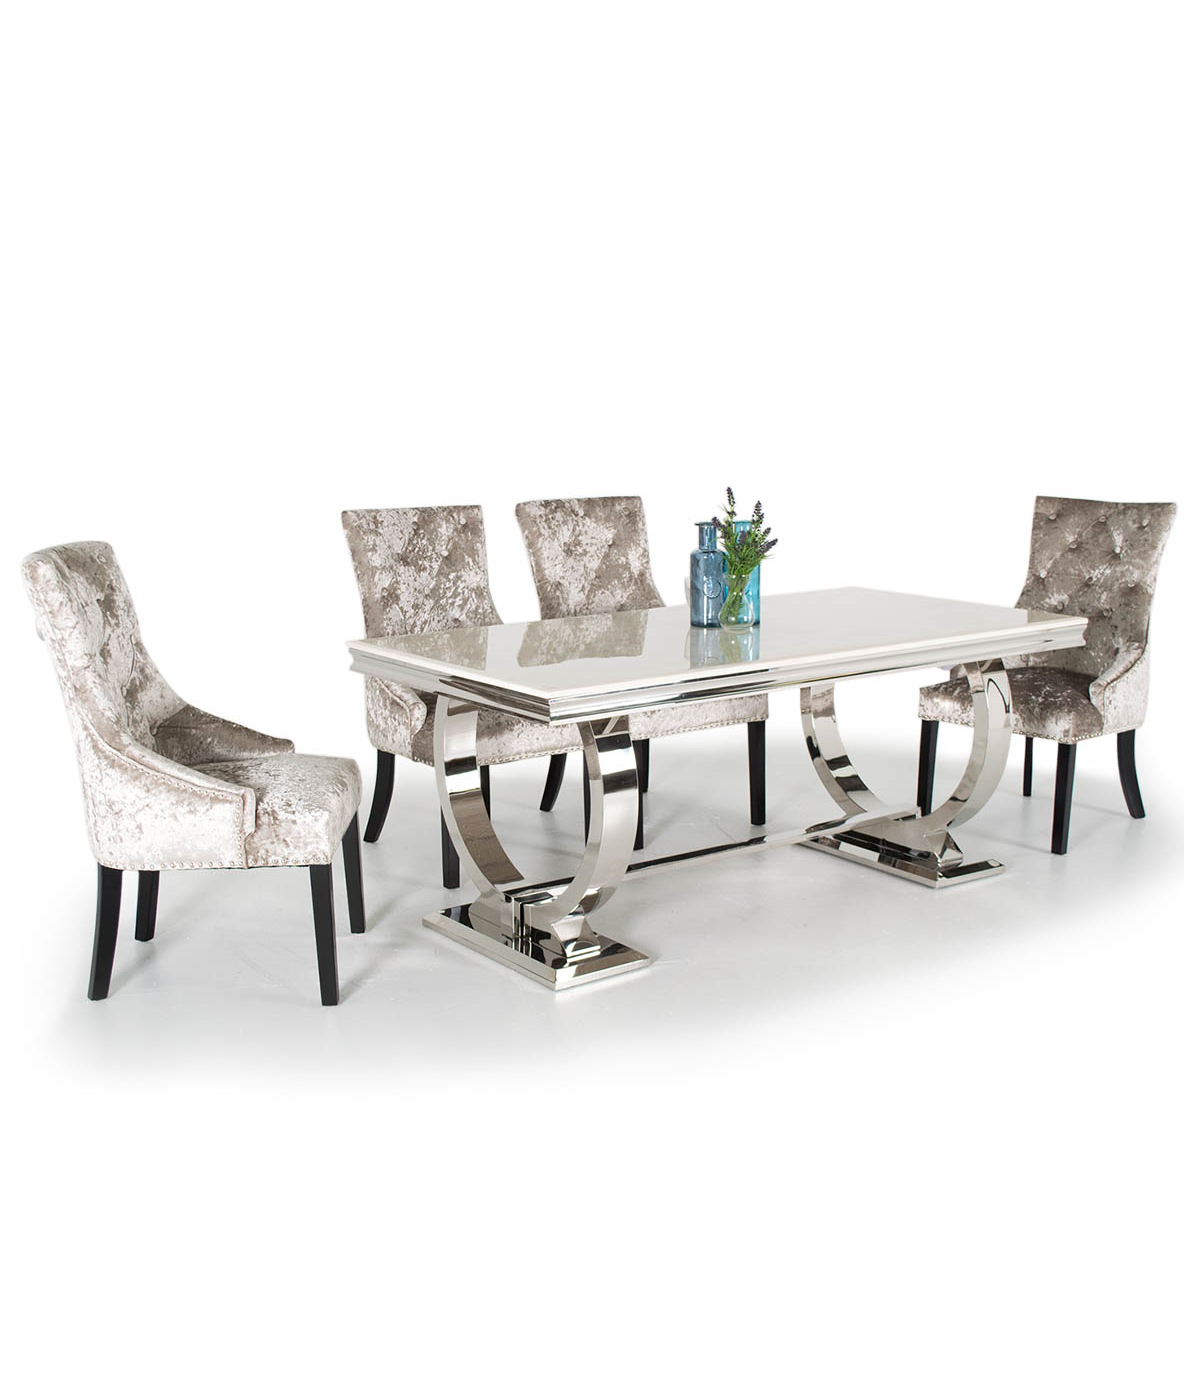 Most Popular Contemporary 6 Seating Rectangular Dining Tables With Regard To Venice Marble Dining Table With 6 Chairs (various Colours (Gallery 7 of 30)